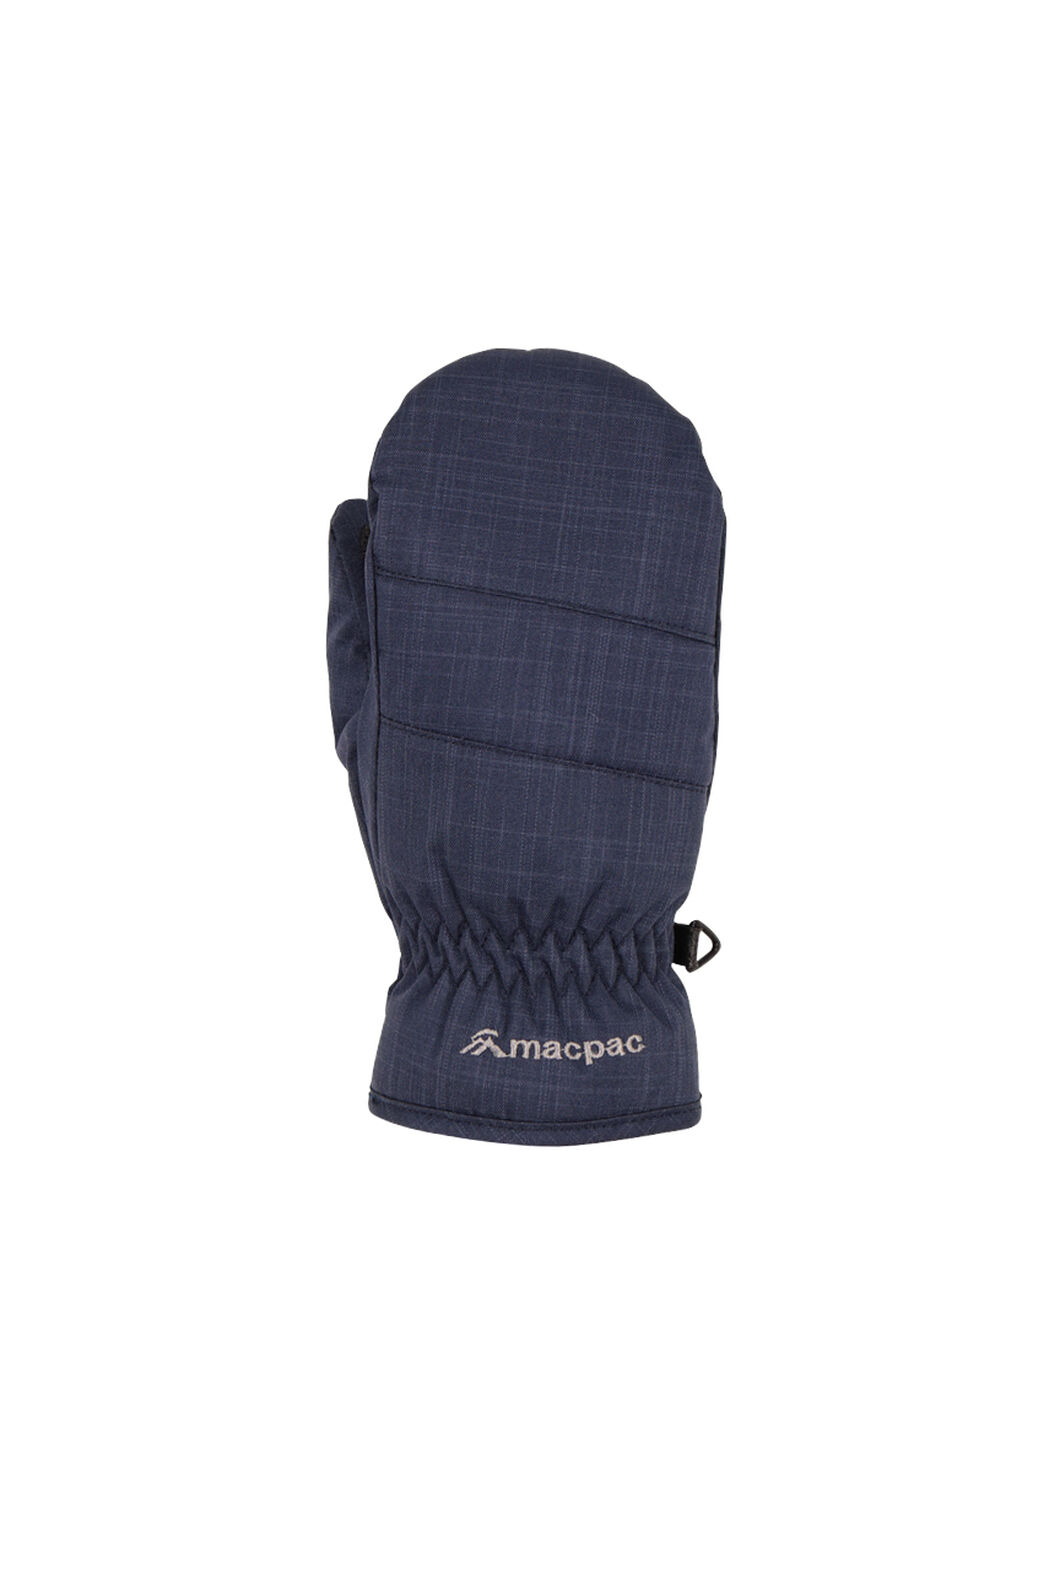 Macpac Mitts Kids', Black Iris, hi-res